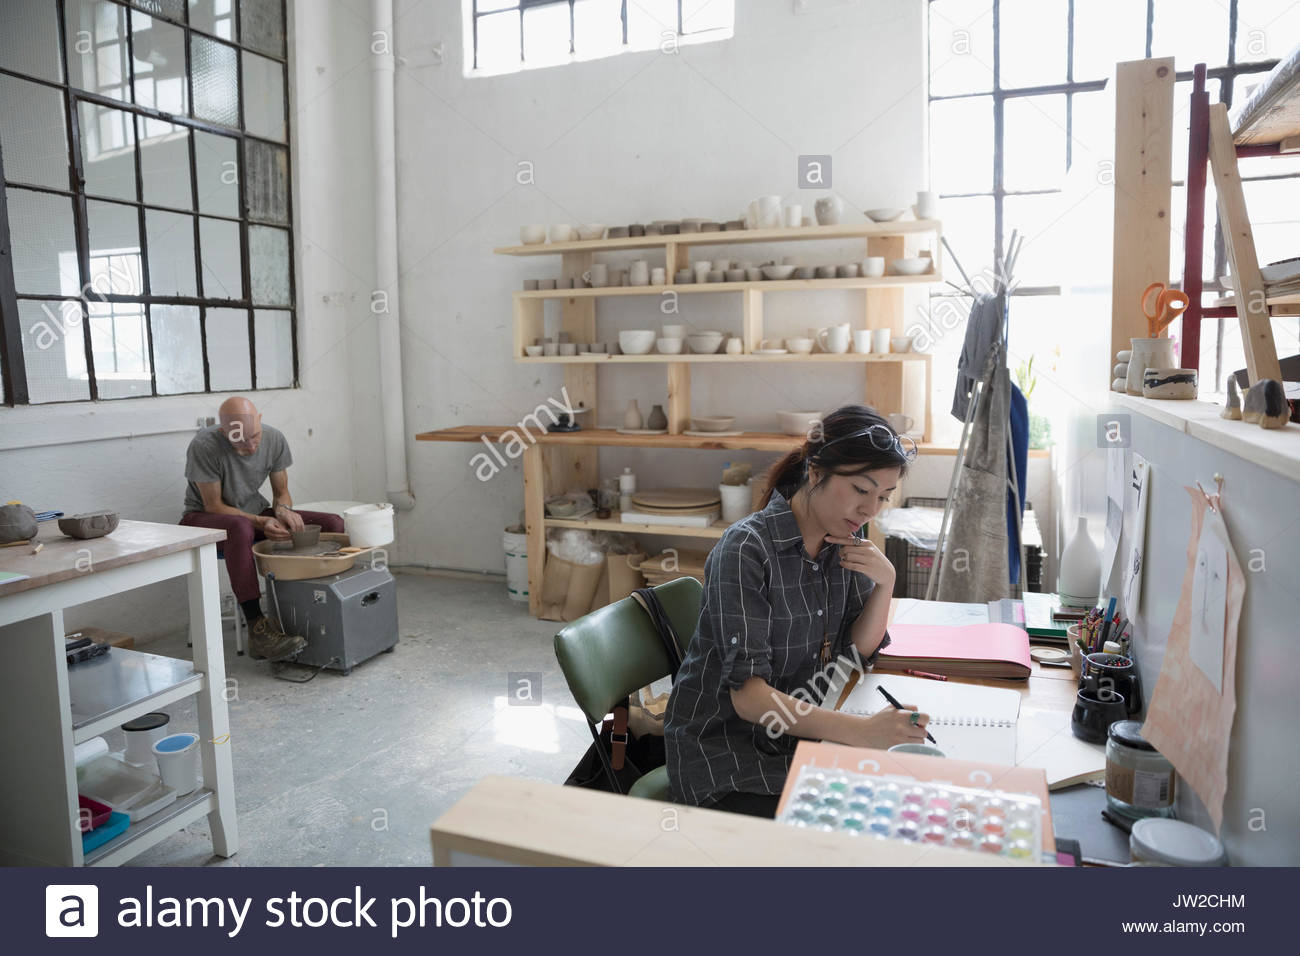 Artists sketching and using pottery wheel in art studio - Stock Image